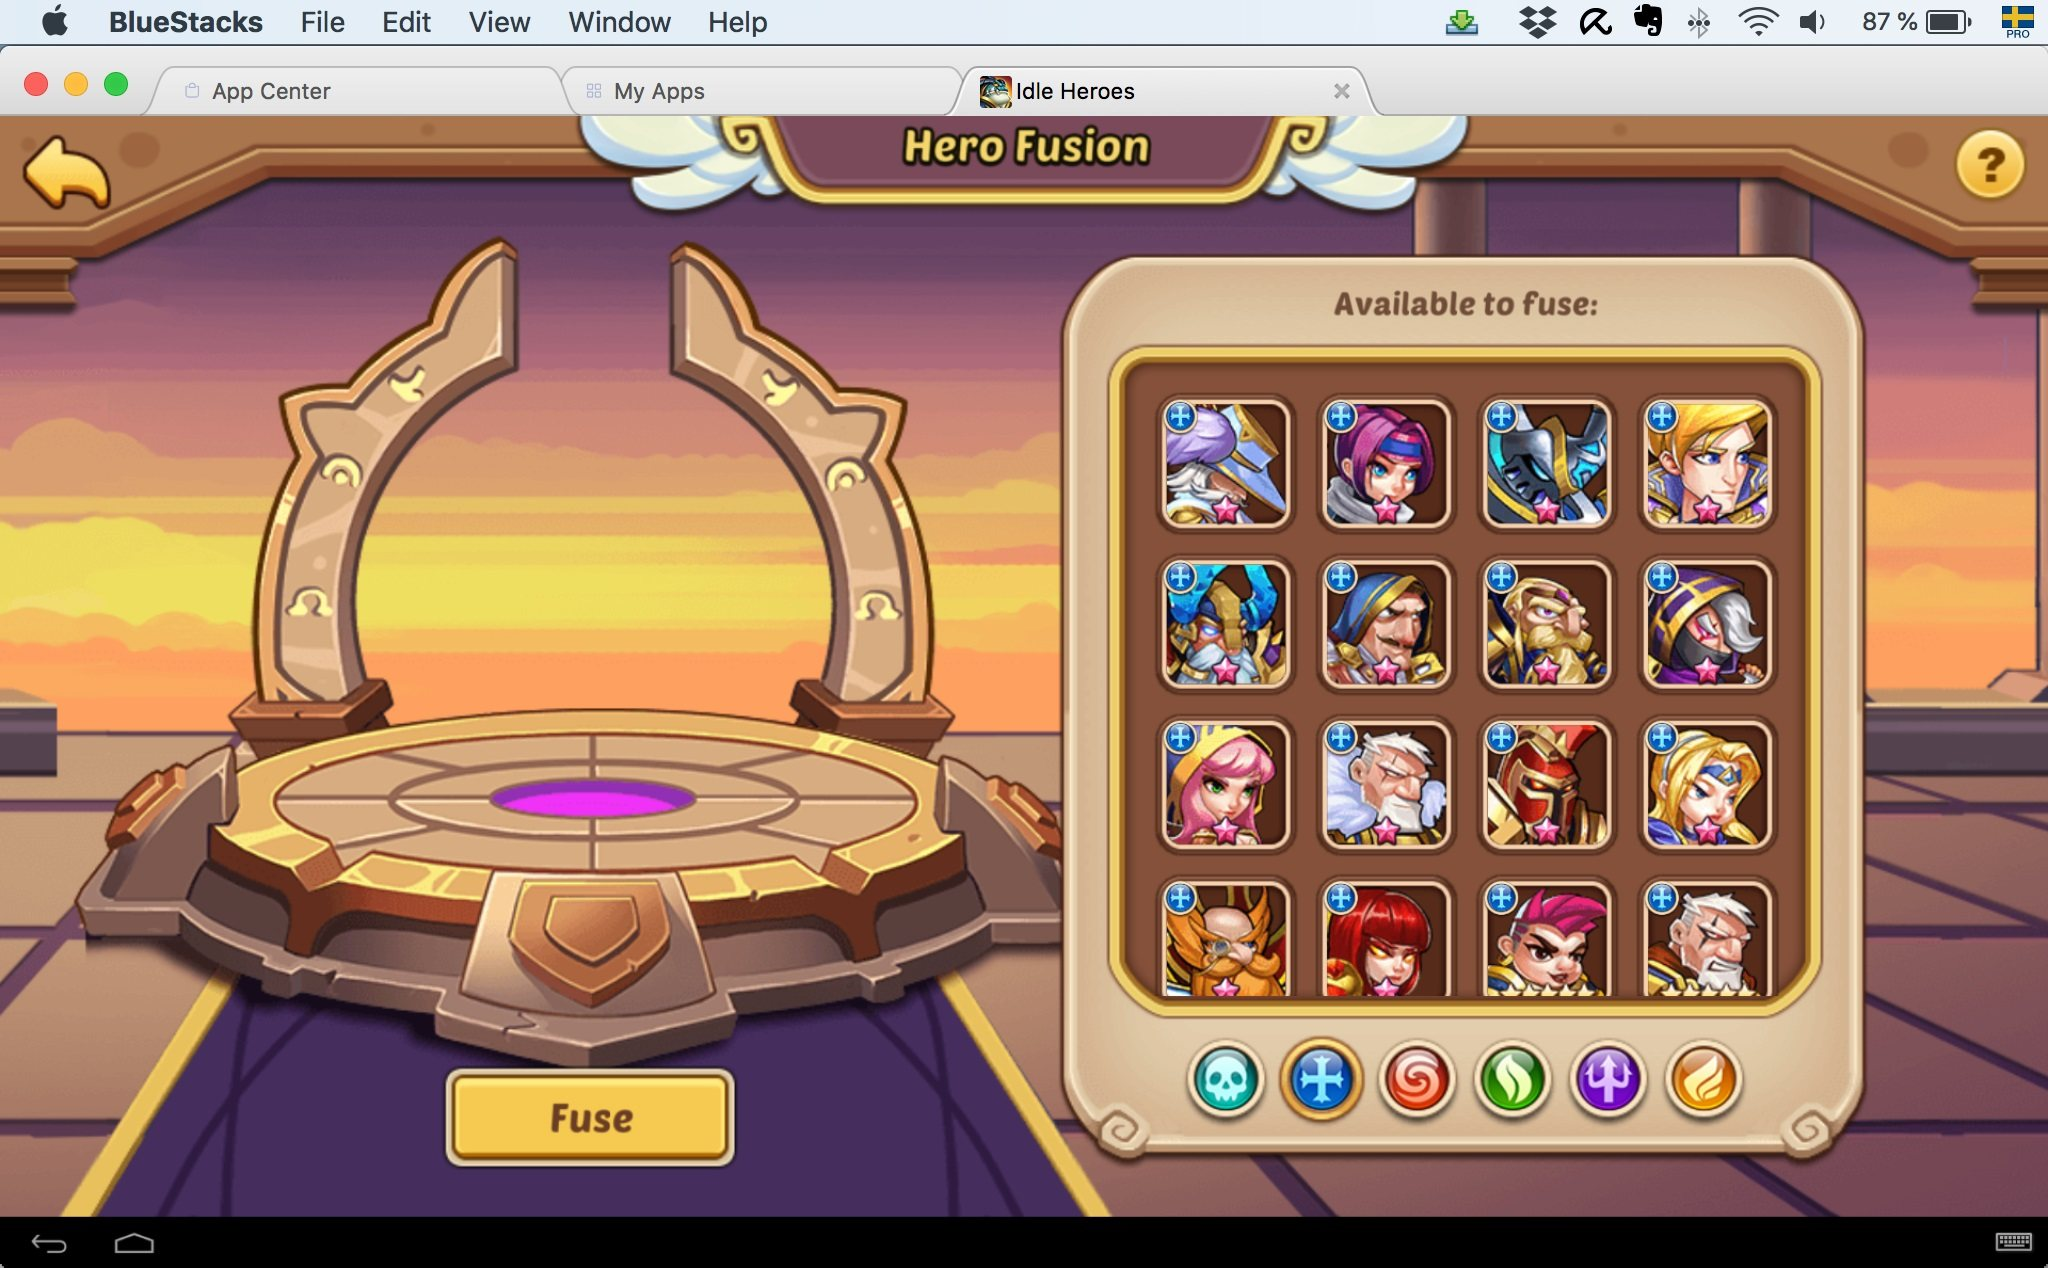 A guide to Recurring Events in Idle Heroes | BlueStacks